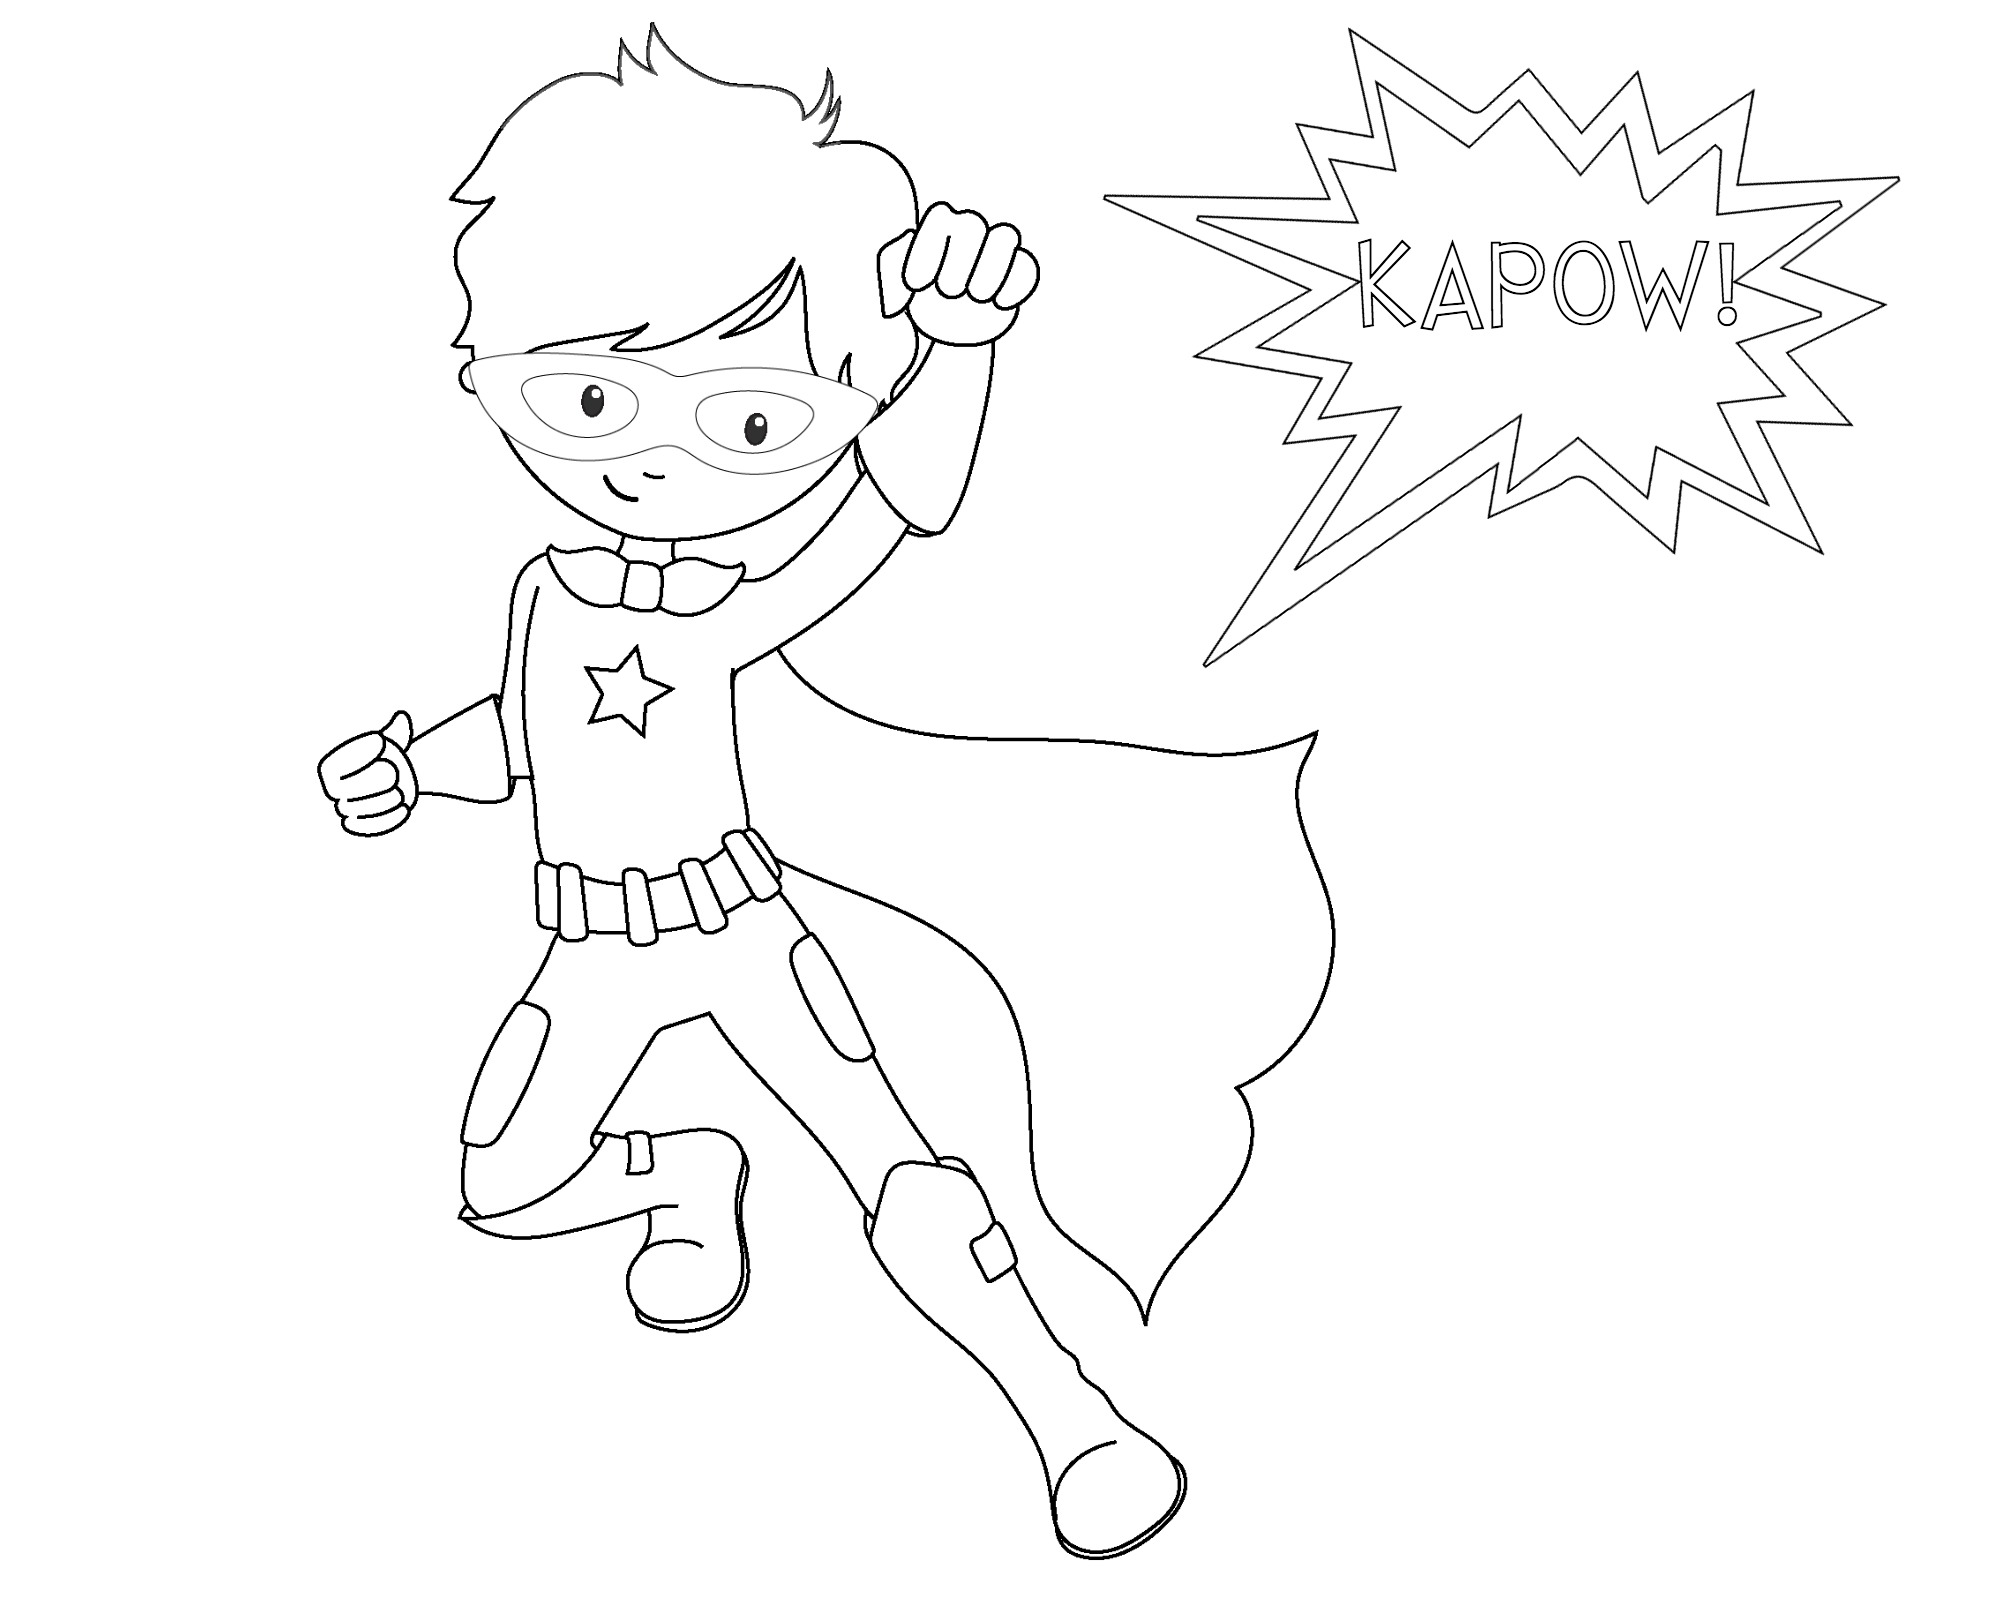 kapow superhero coloring page superhero4